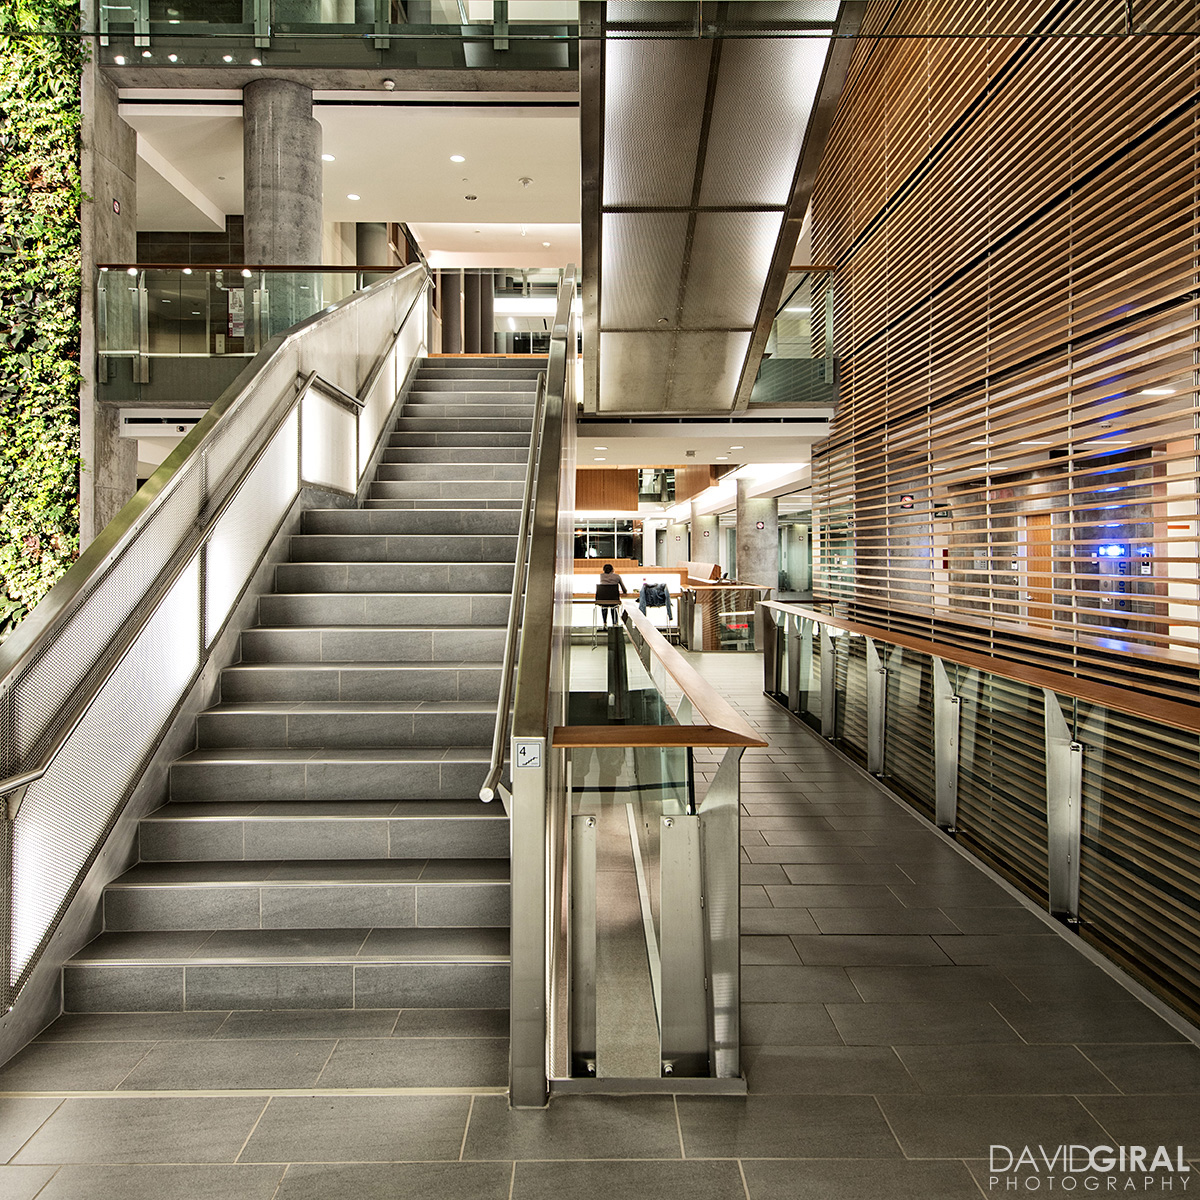 Interiors of Faculty of Social Sciences Building at the University of Ottawa by Diamond Shmitt and KWC Architects